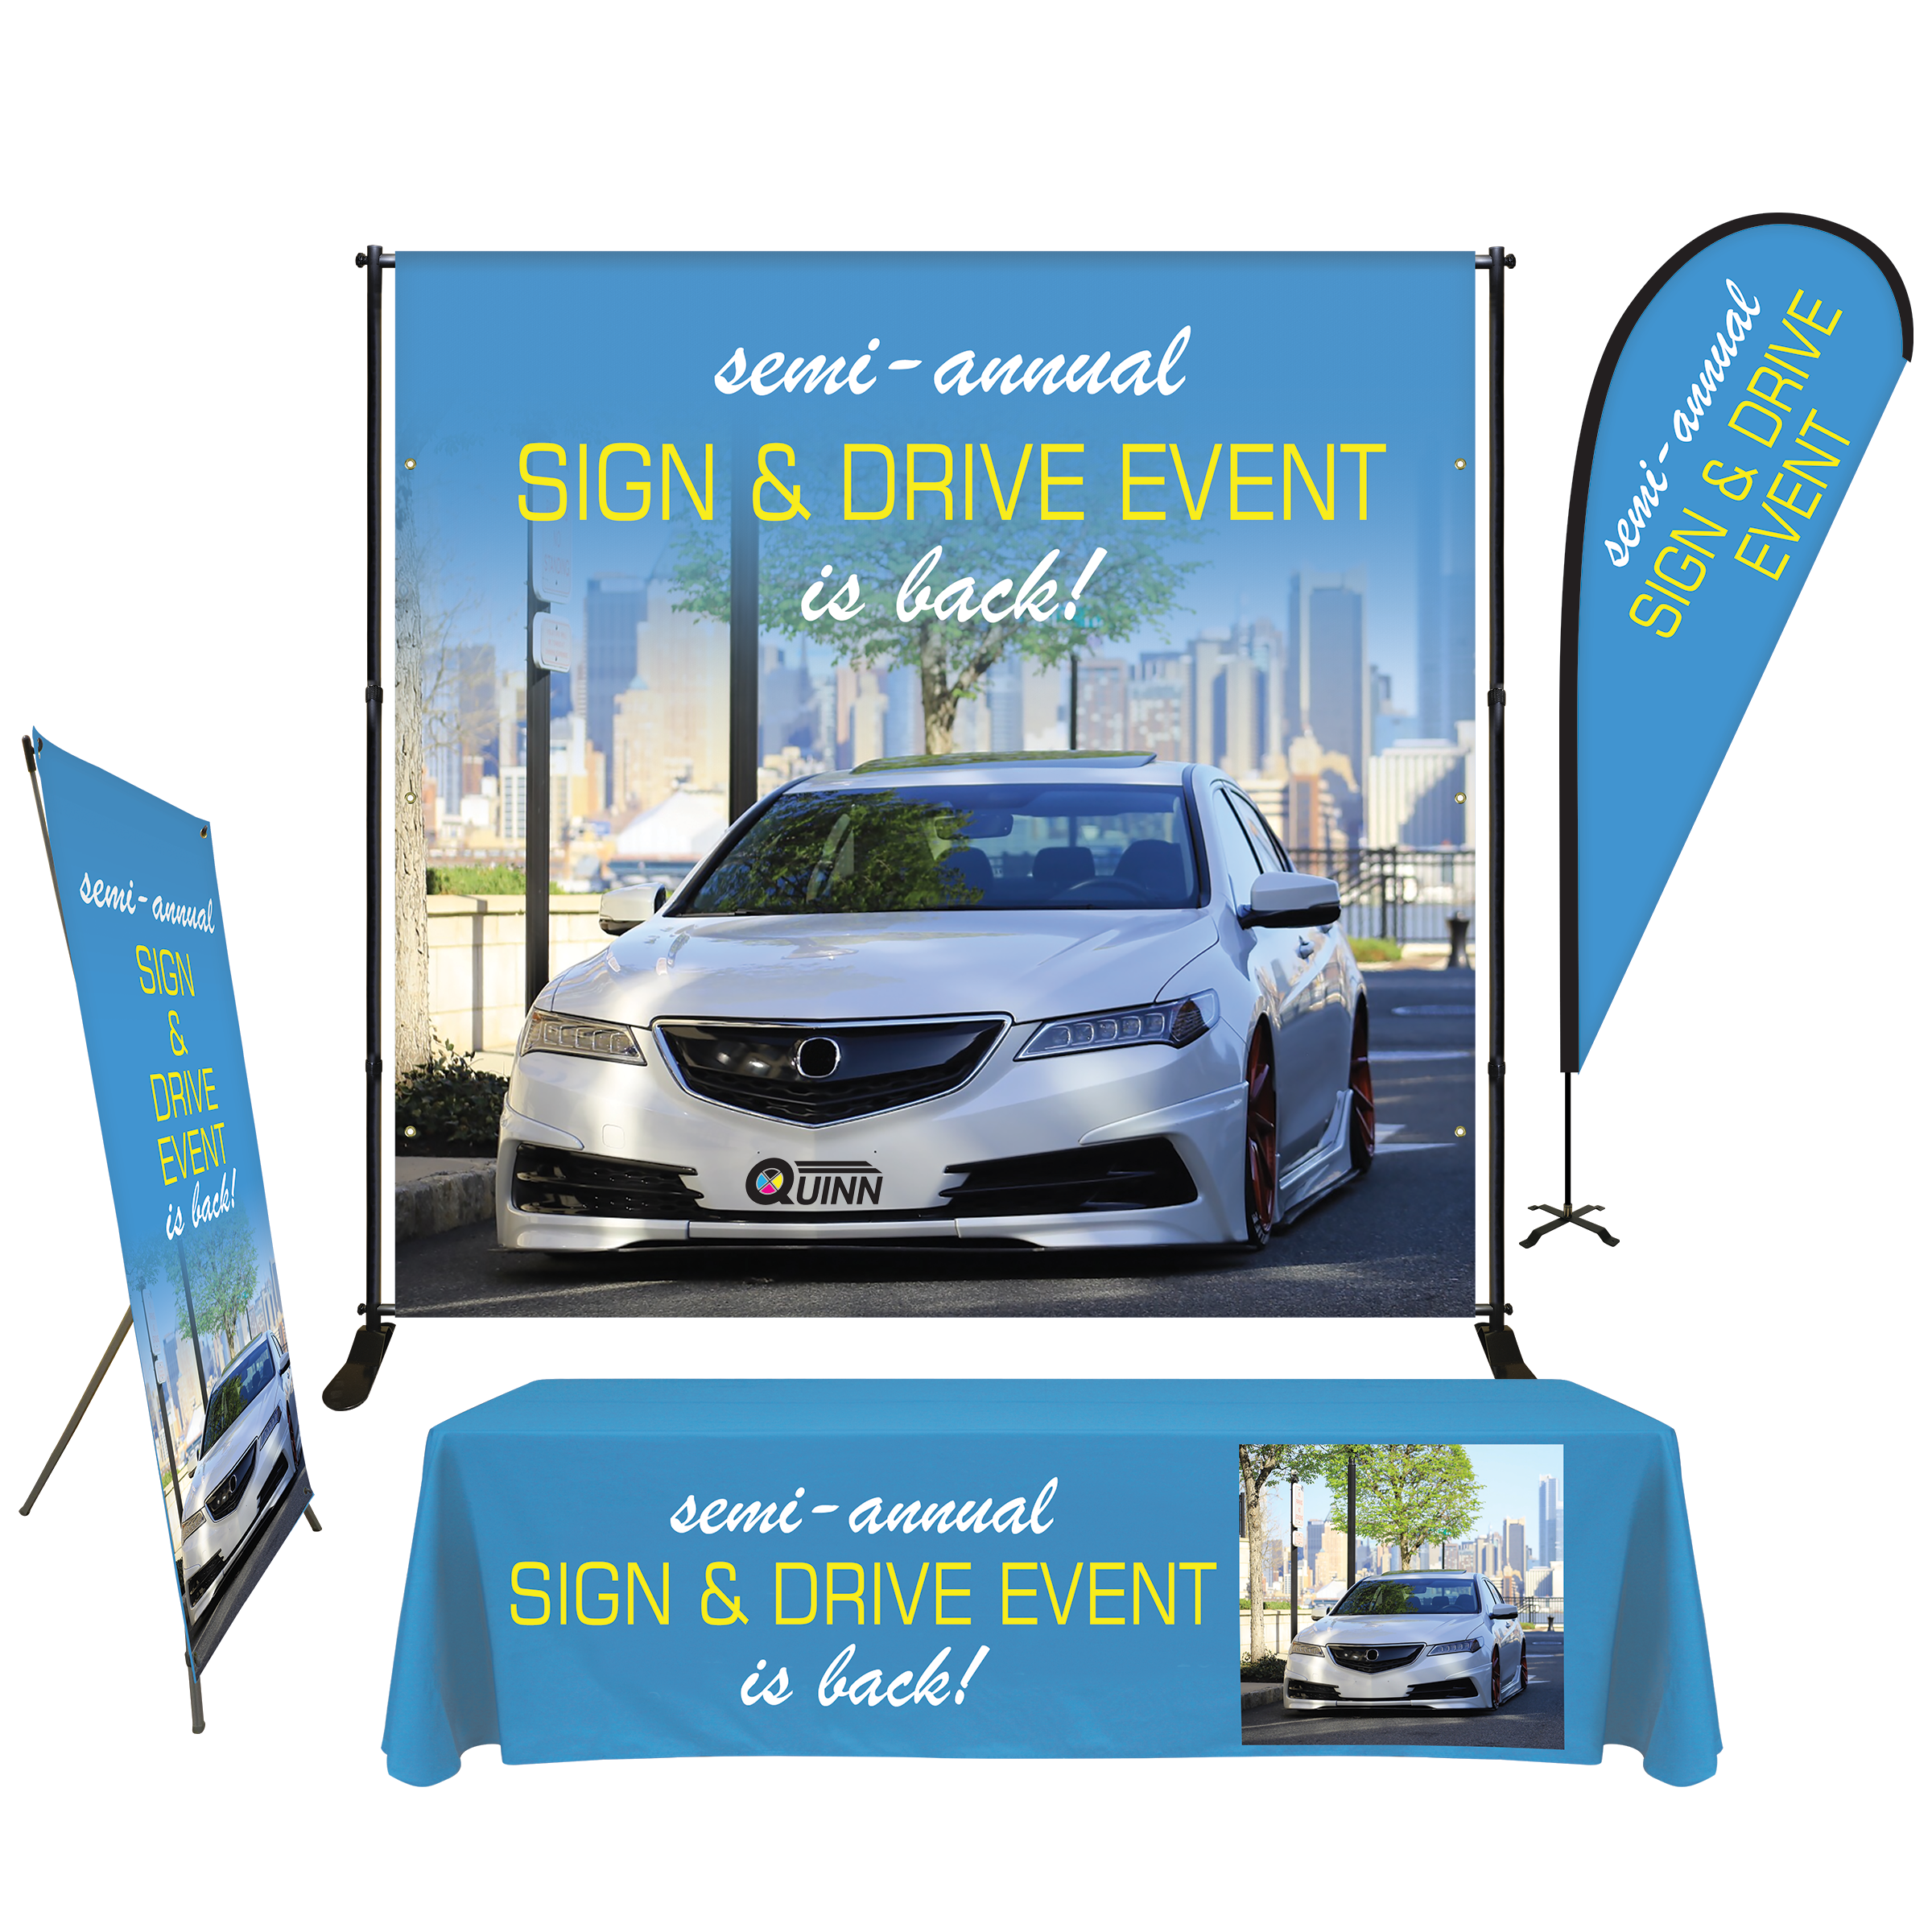 Quinn Promotional Display Packages Give You Everything You Need To Promote Your Next Sales Event Or Dealership Event Sign Signs Event Trade Show Display